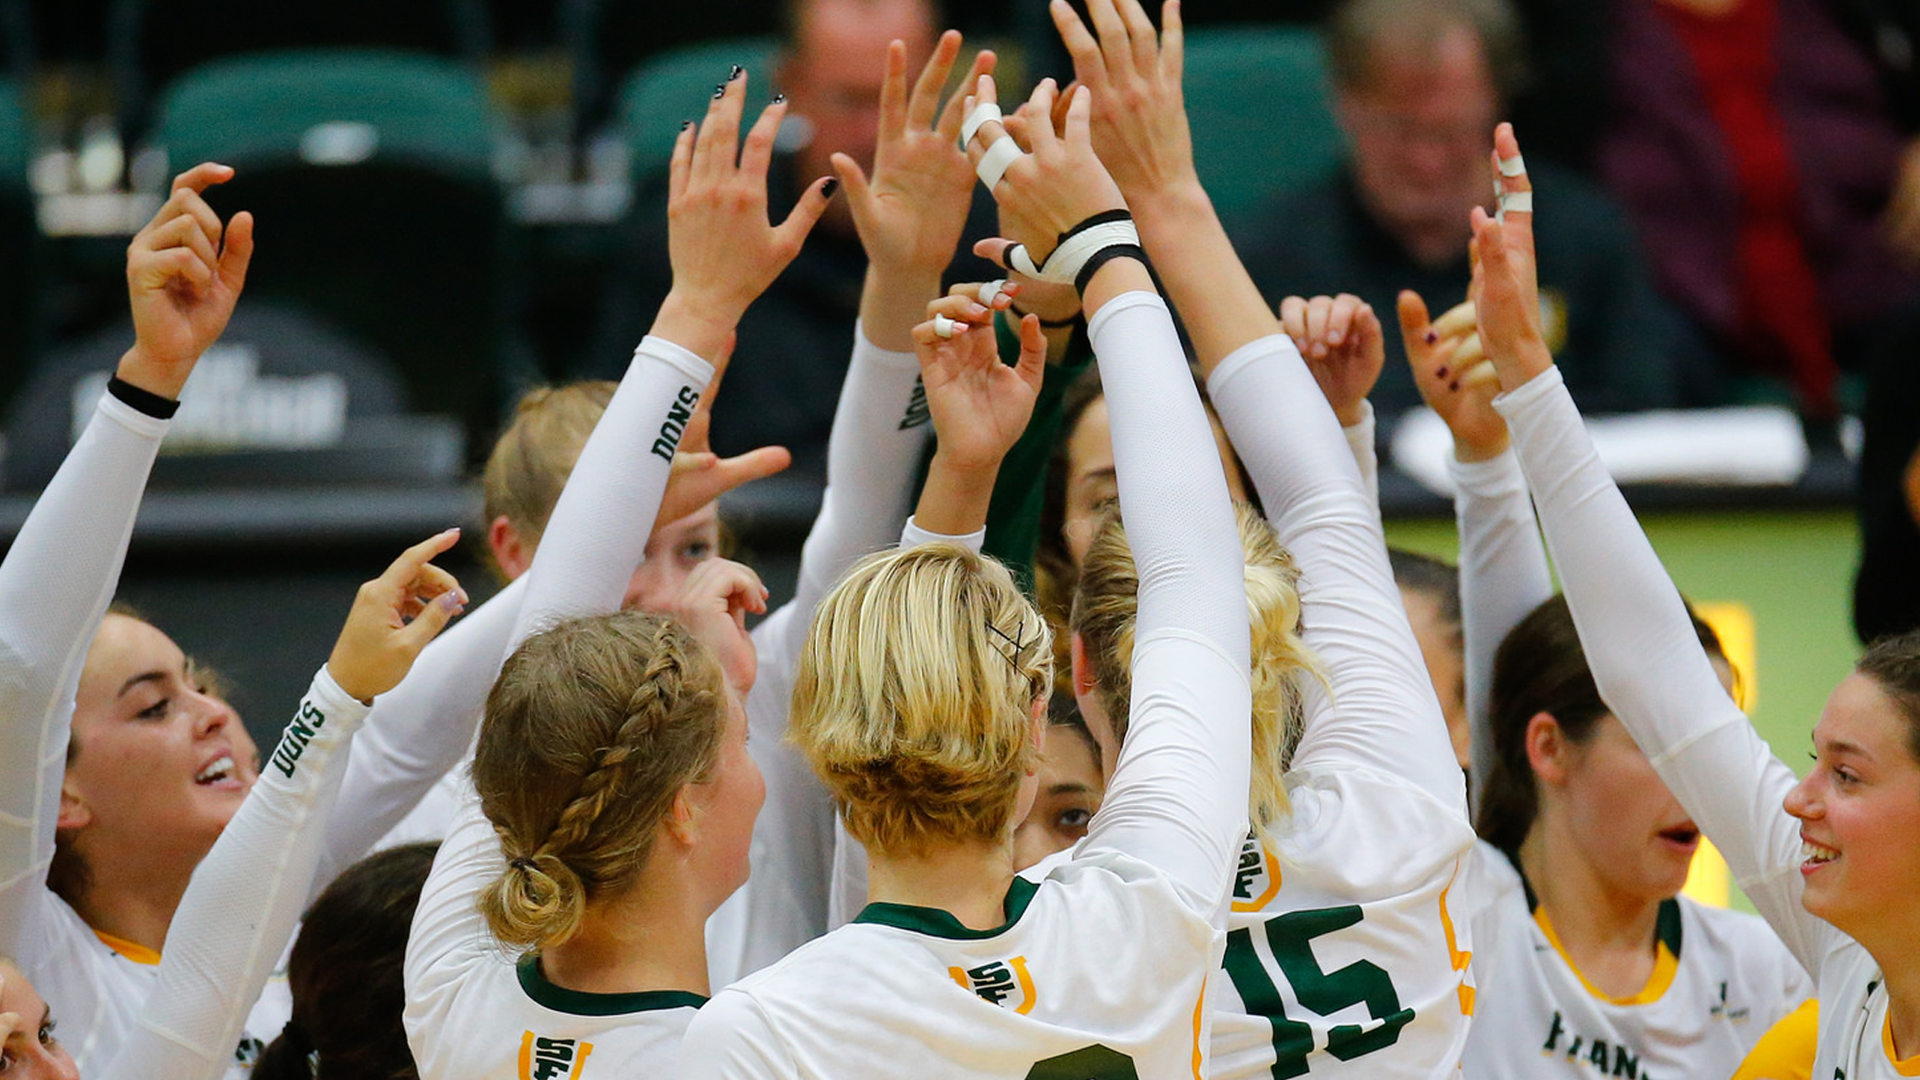 Usf Admissions Office >> WVB | Dons secure win over Army, 3-2 - University of San ...